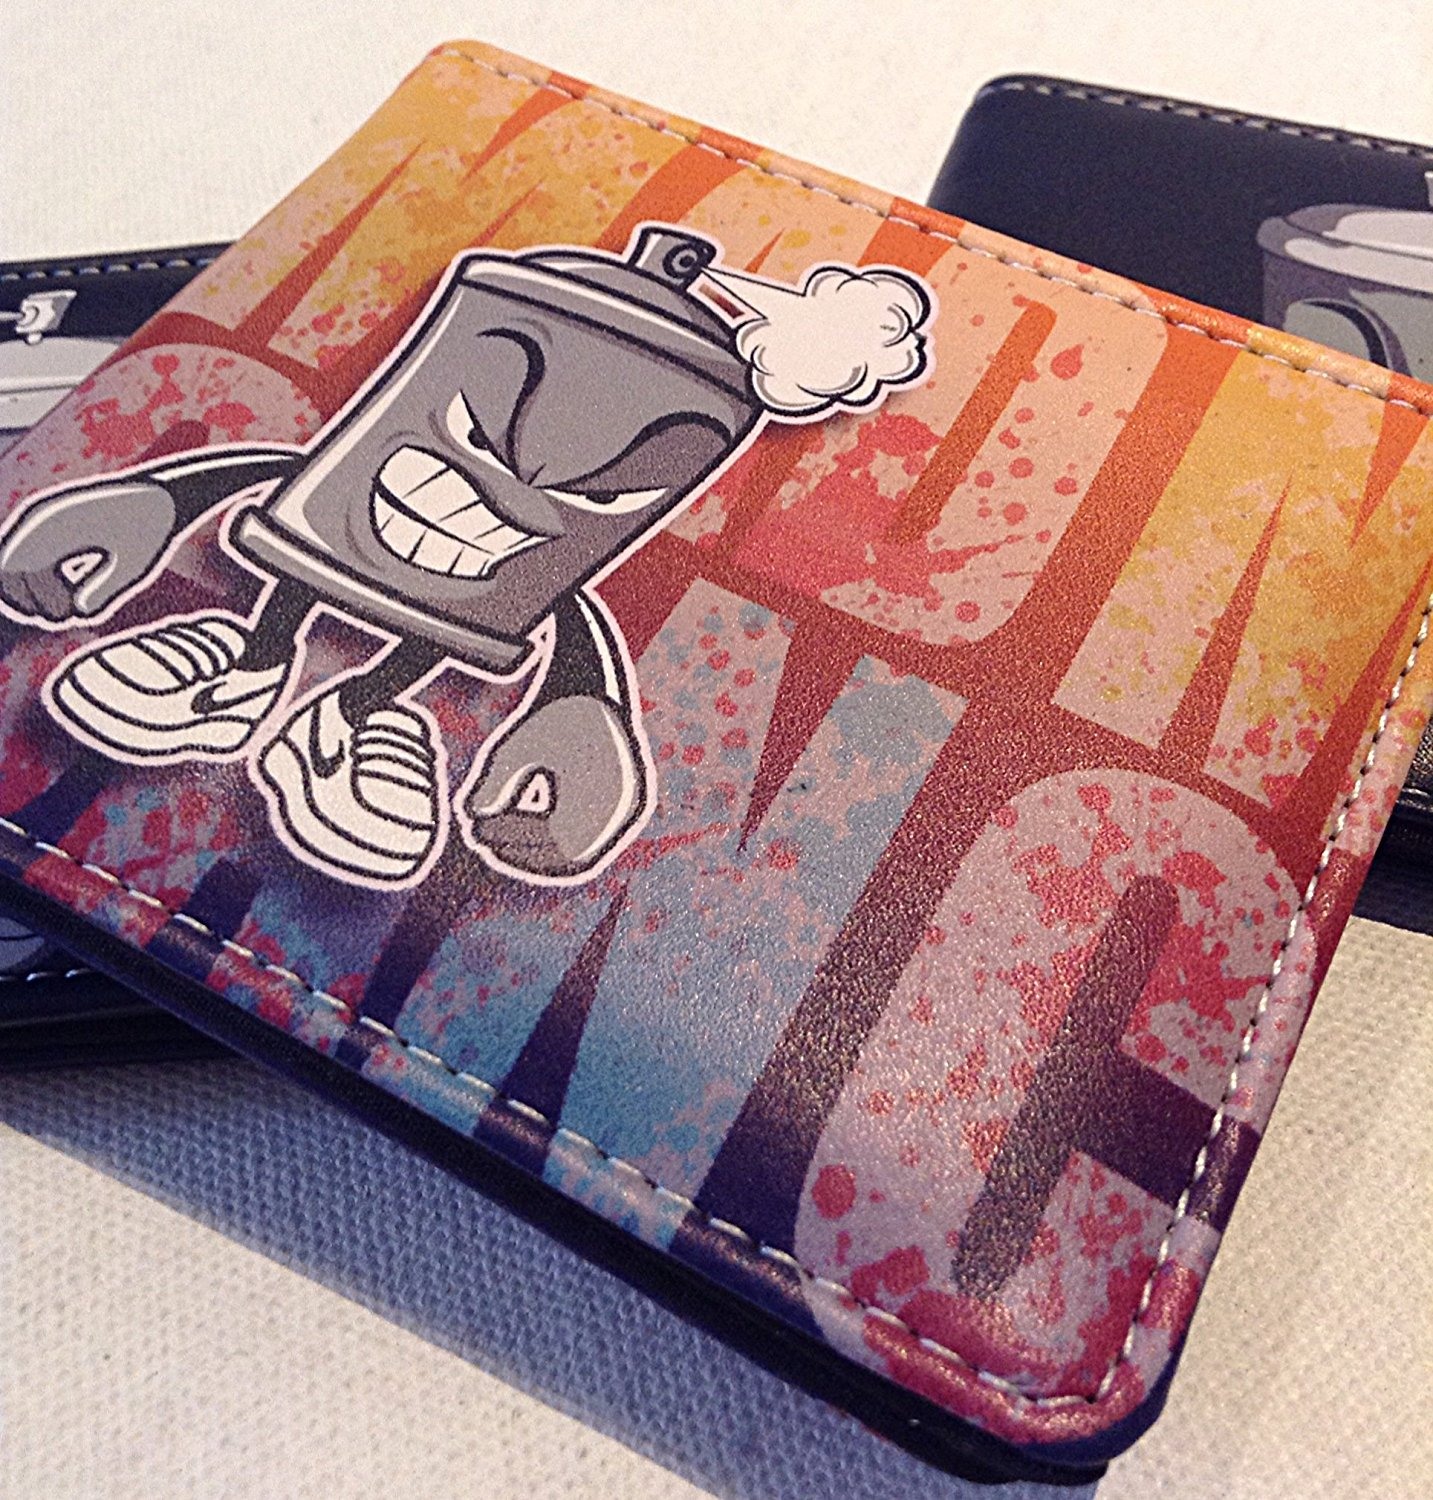 MaD CaN GraFF Life wallet style,5 pocket Graff style wallet collection , simple 5 pocket wallet/ clear ID slot , hiphop style collection